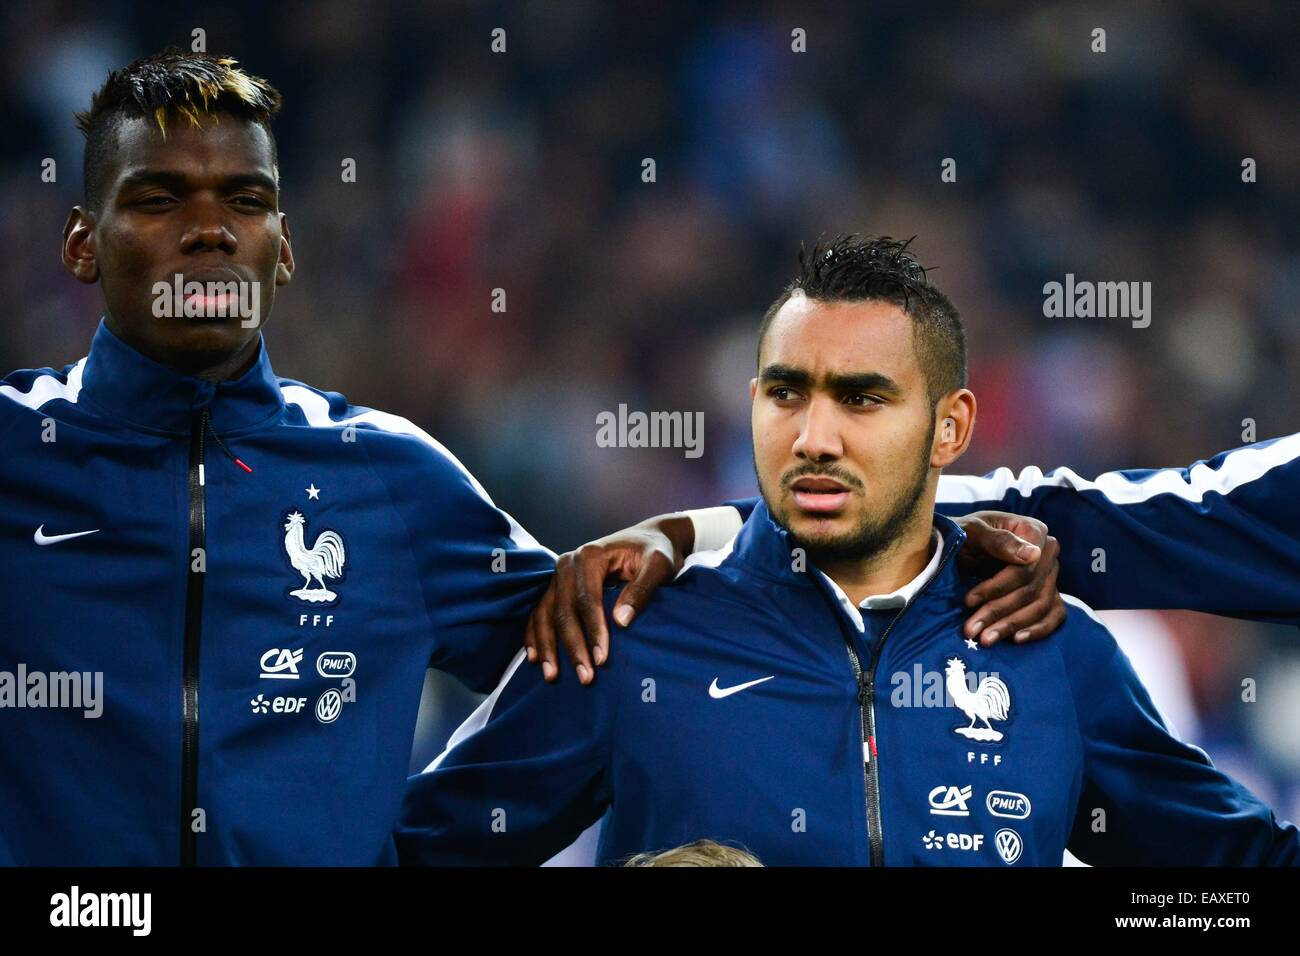 paul pogba dimitri payet france suede match stock photo royalty free image. Black Bedroom Furniture Sets. Home Design Ideas